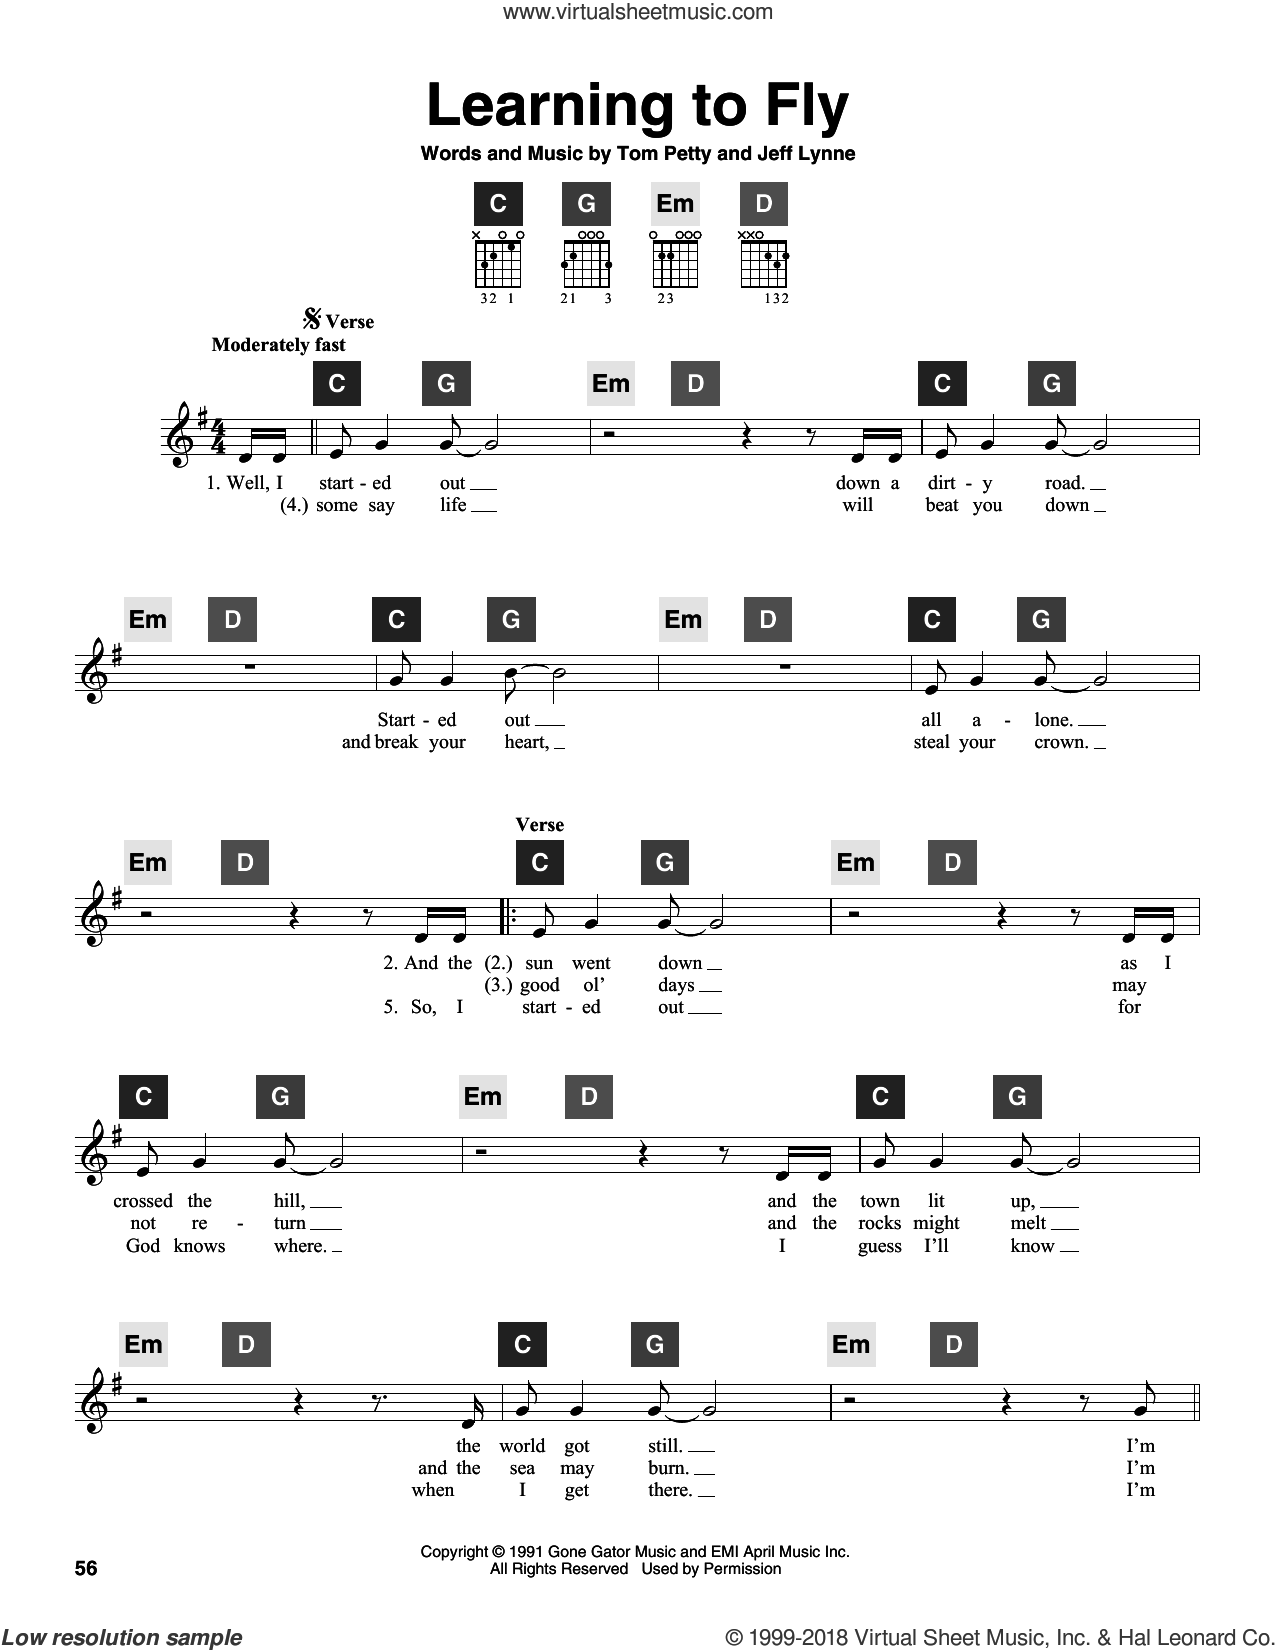 Learning To Fly sheet music for guitar solo (ChordBuddy system) by Tom Petty and Jeff Lynne, intermediate guitar (ChordBuddy system)